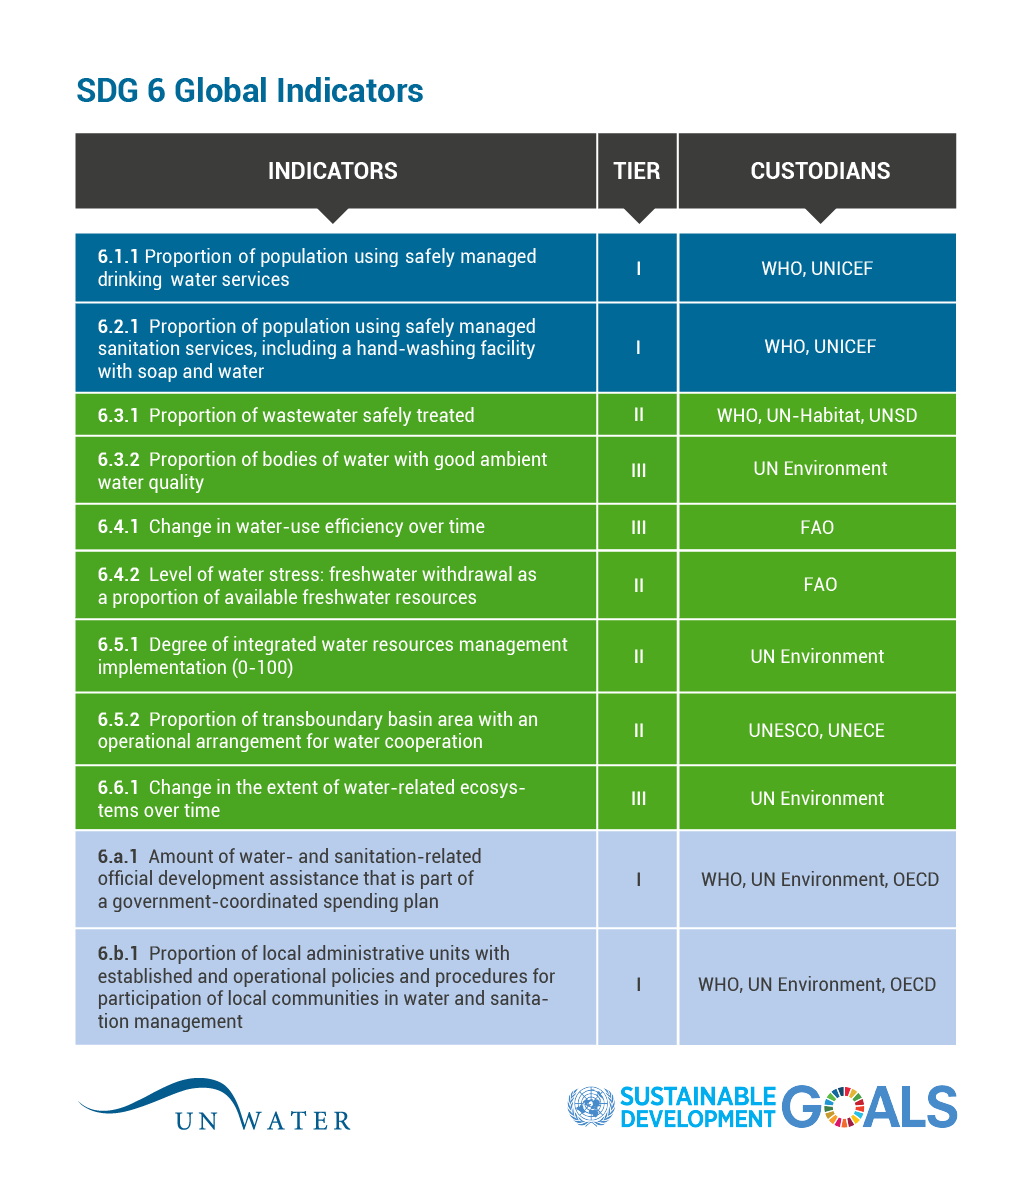 SDG 6 indicators and the tiering system